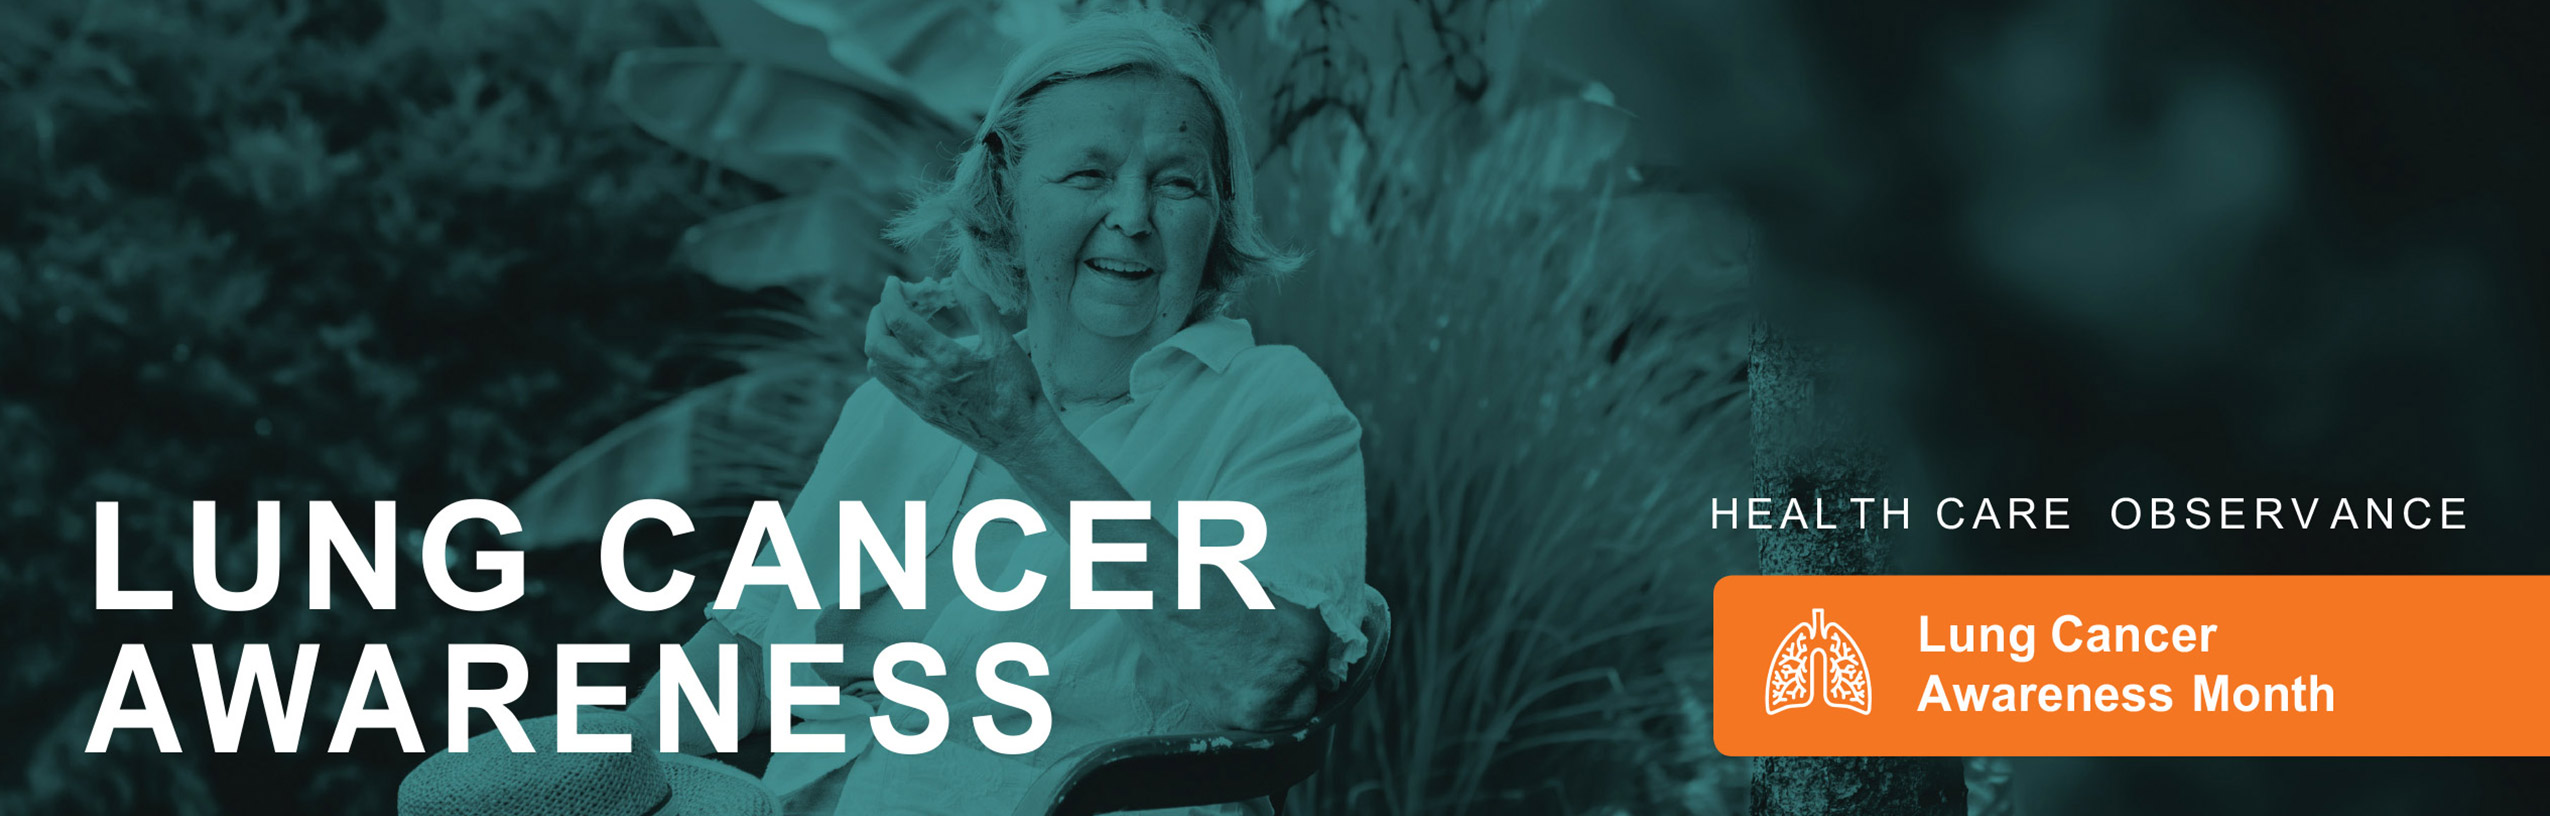 Helpful Home Care info about lung cancer